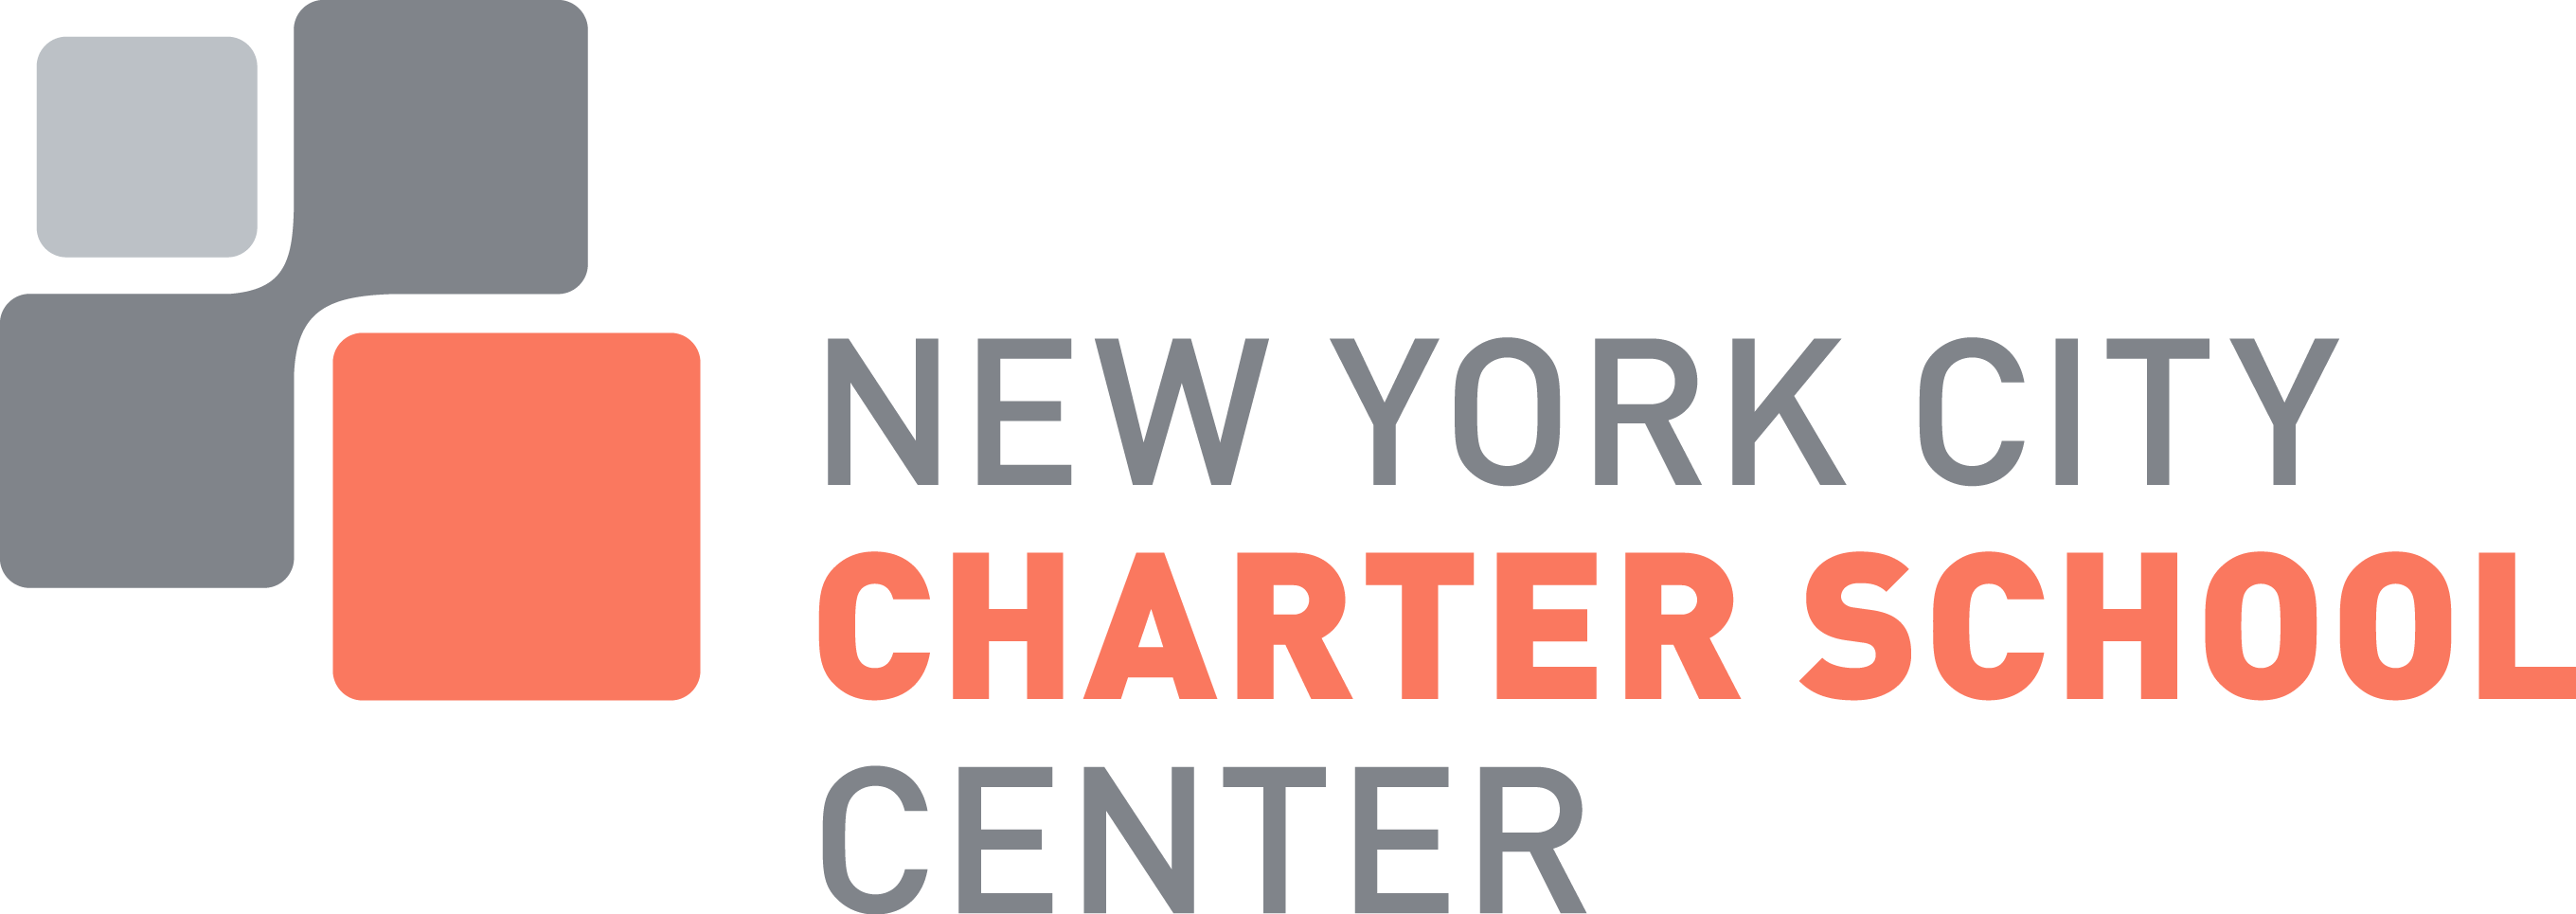 Charter_Center_logo_for_web.png